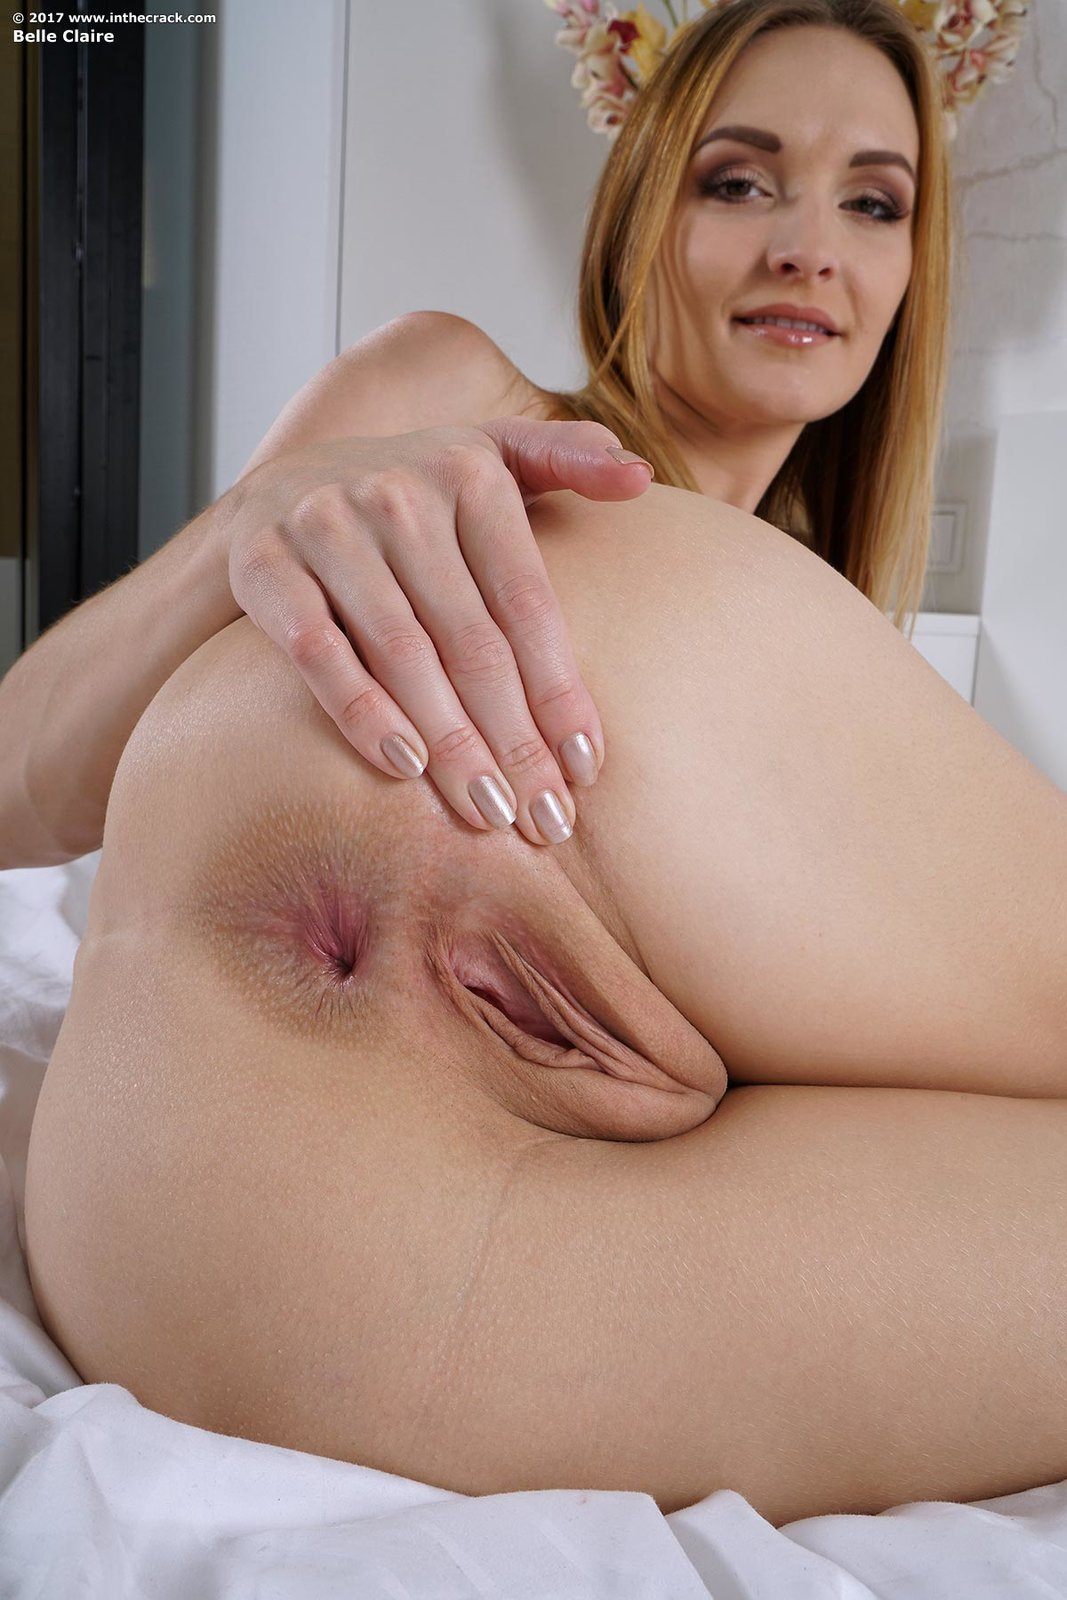 Belle Claire in Sexy Spreads by In The Crack (15 photos ...